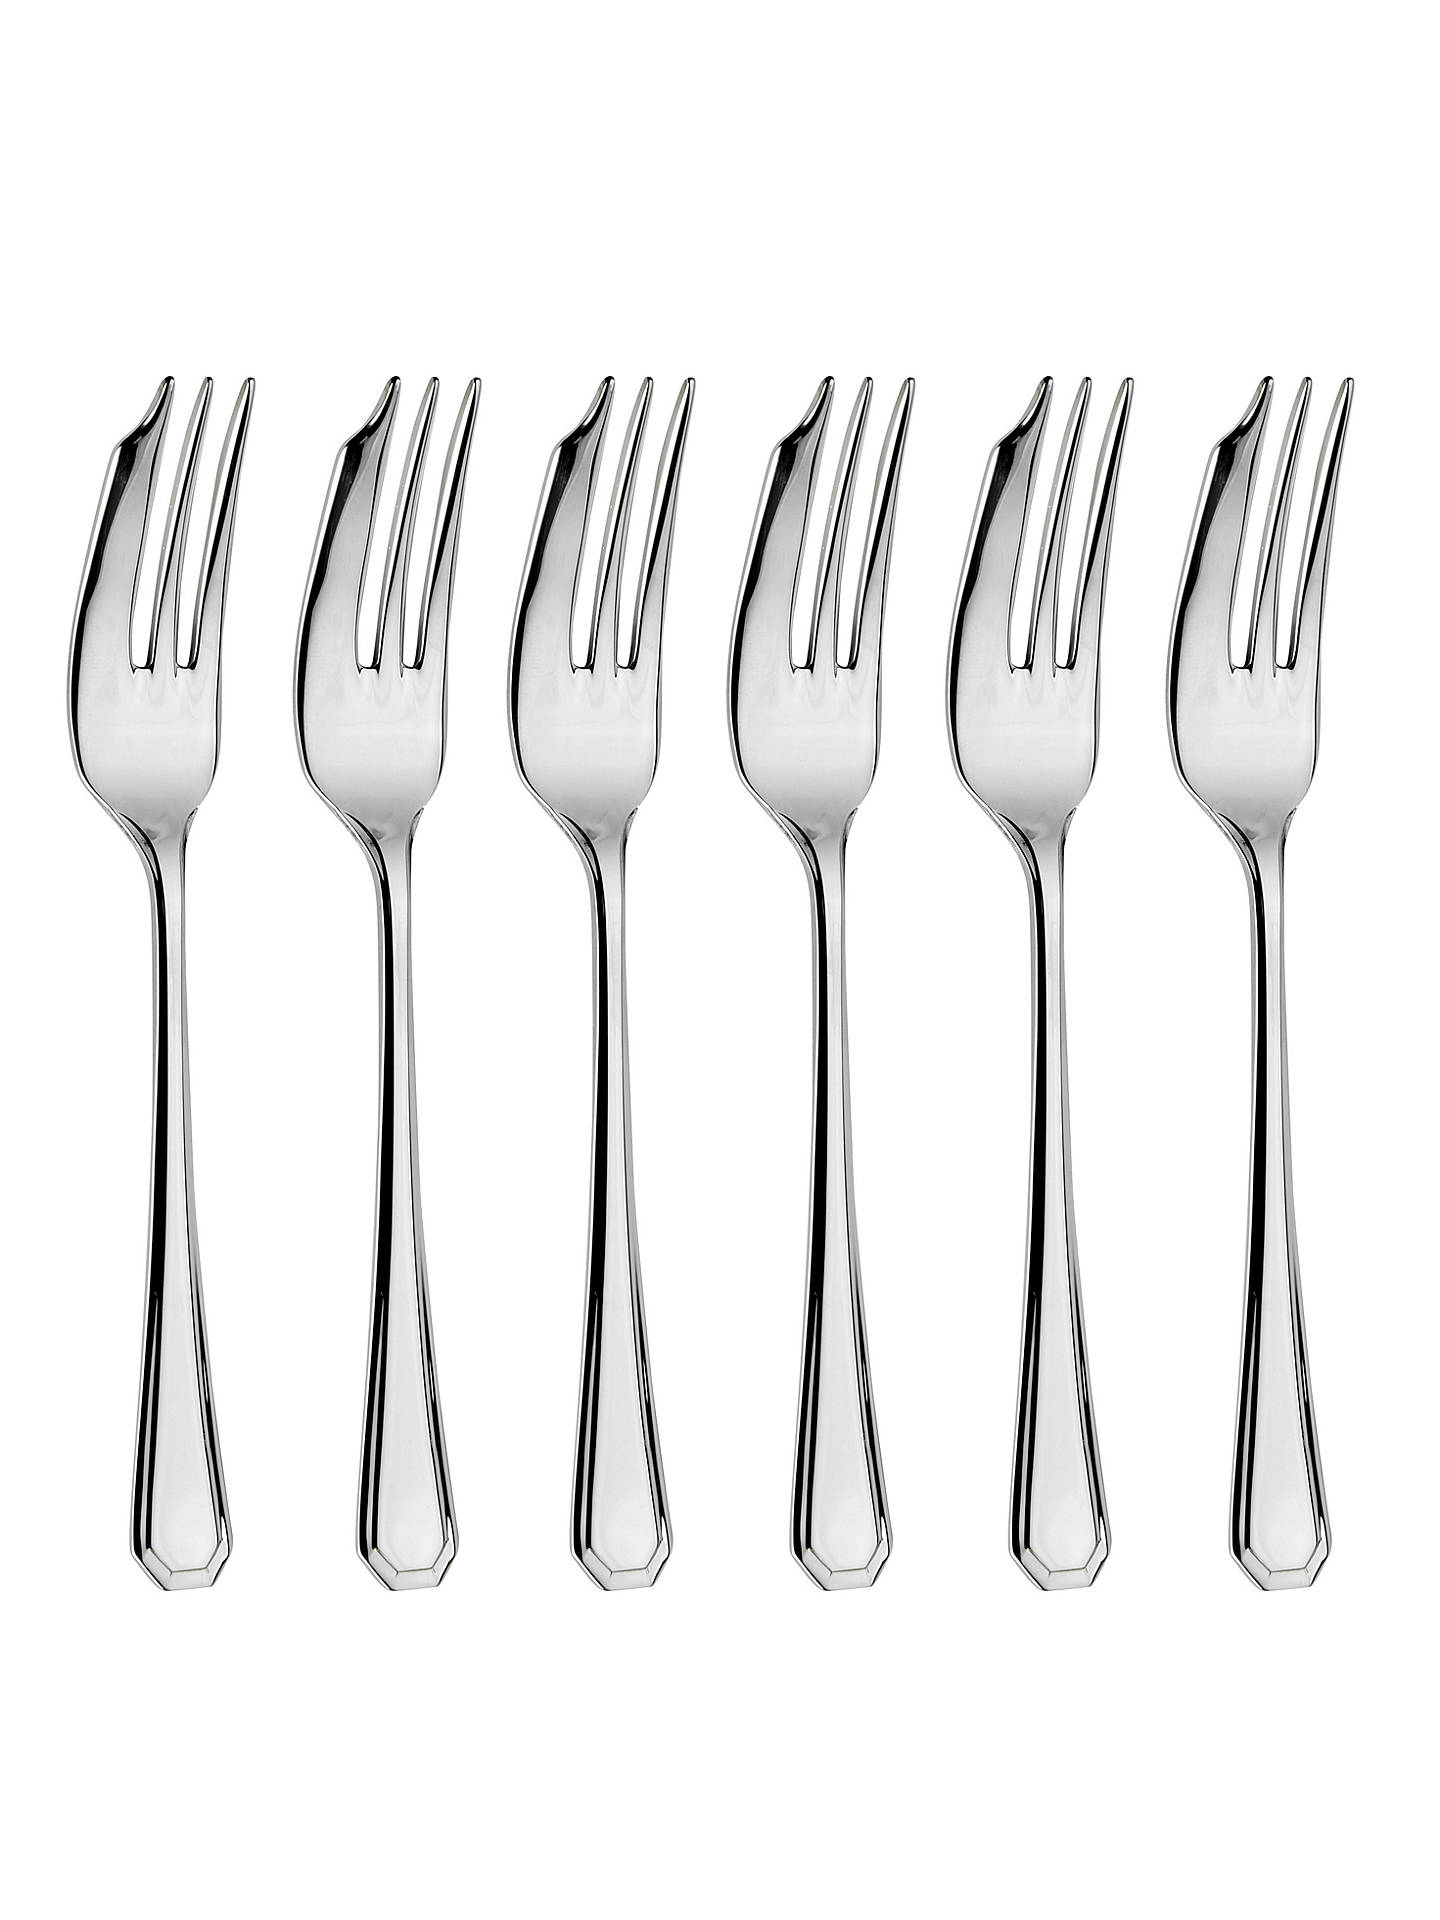 BuyArthur Price Grecian Pastry Forks, Set of 6 Online at johnlewis.com